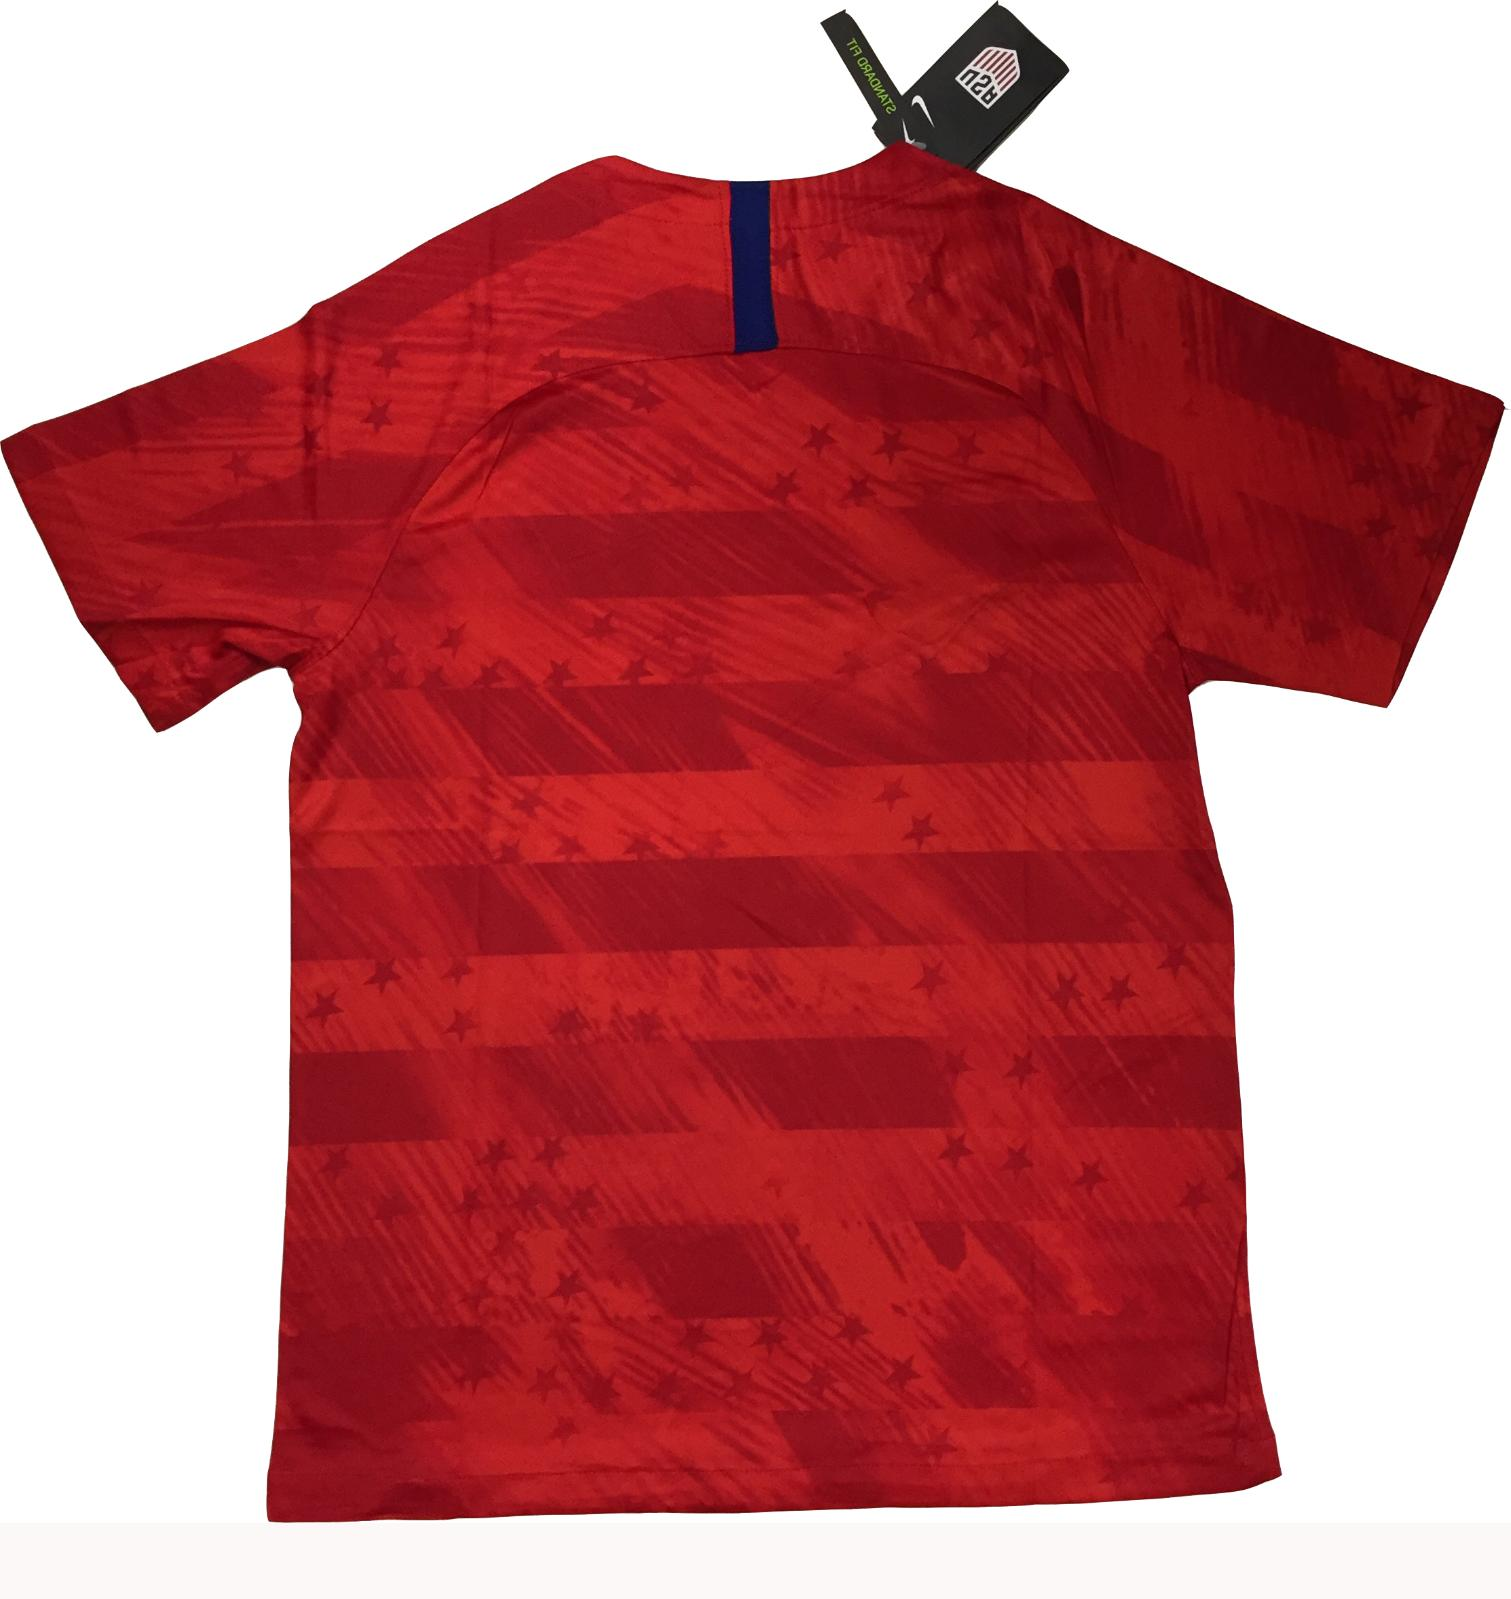 NEW JERSEY GOLD CUP RED AWAY